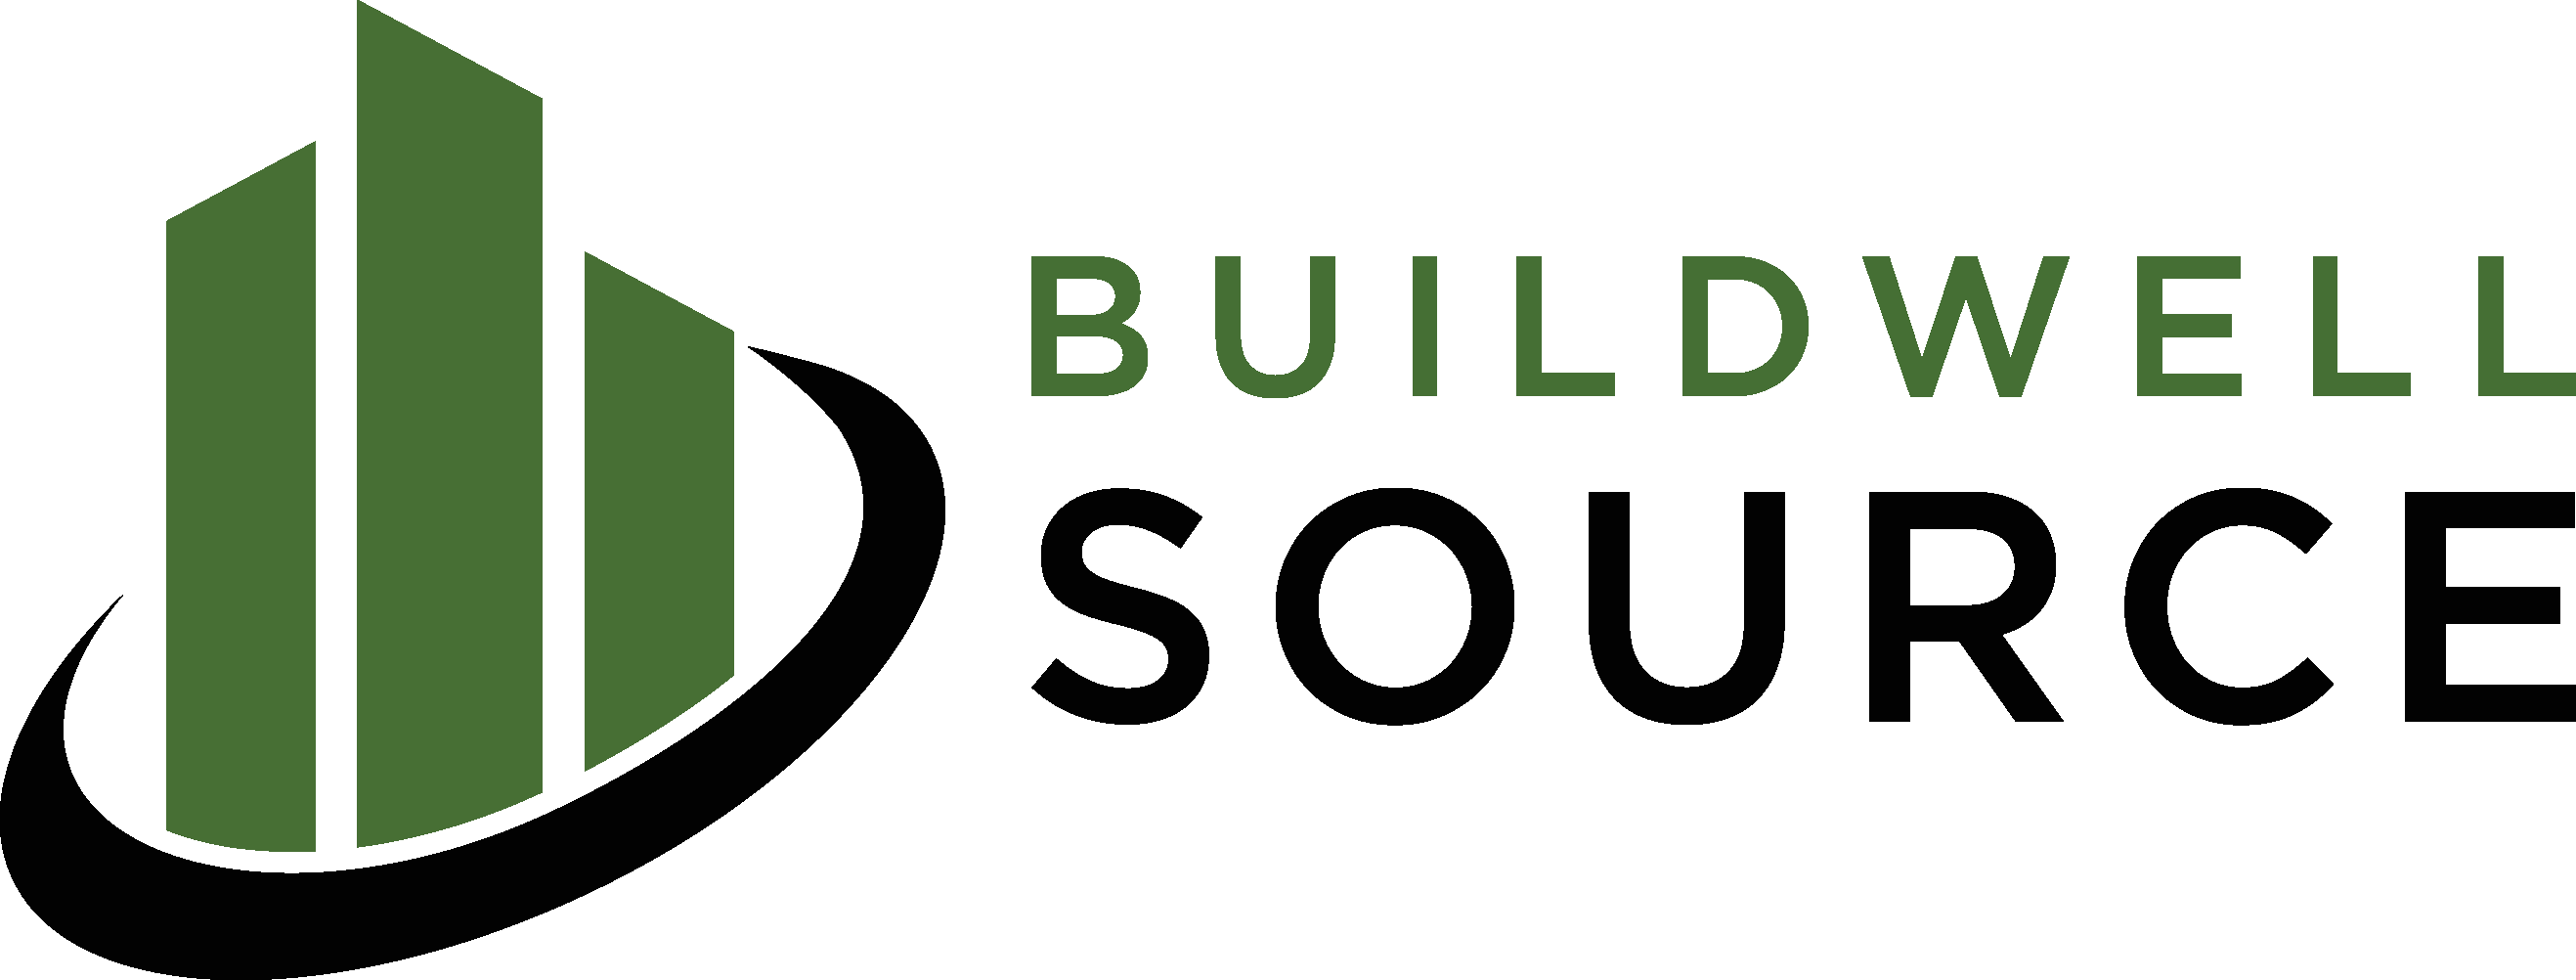 BUILDWELLSOURCElogo1